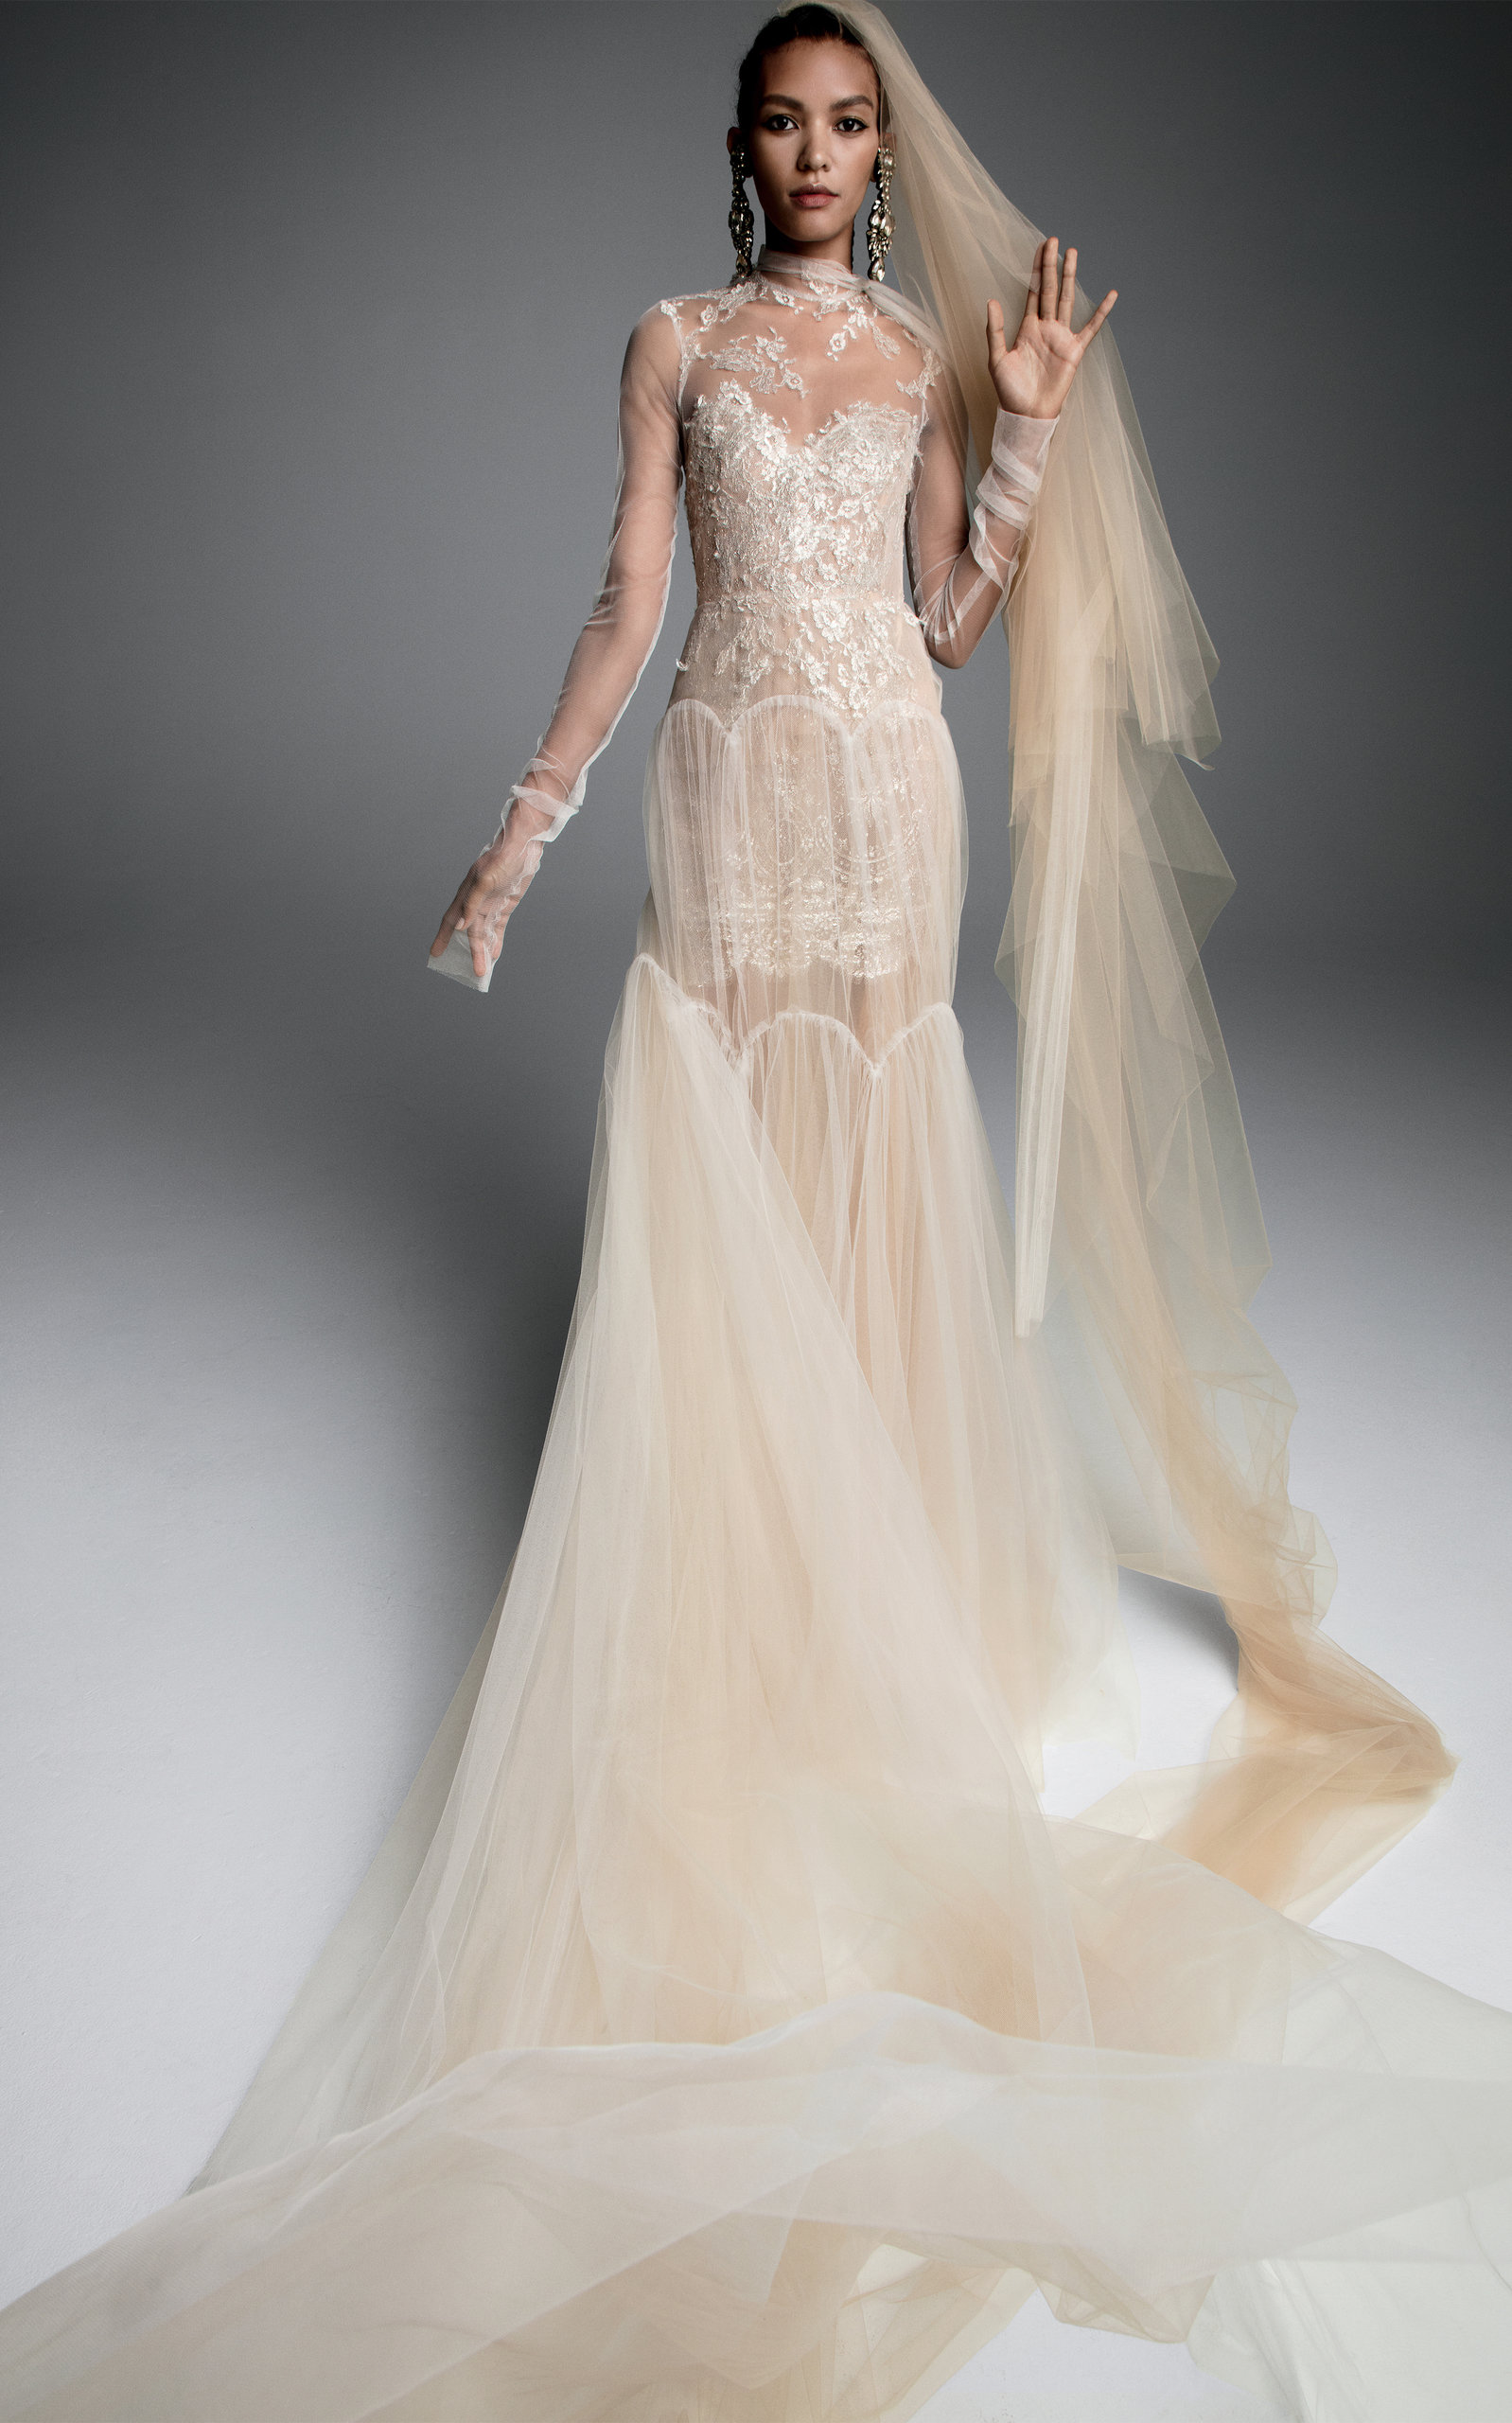 33b3e665d75e1 Sandrine Tulle Gown With Arch Tiered Skirt by Vera Wang | Moda Operandi